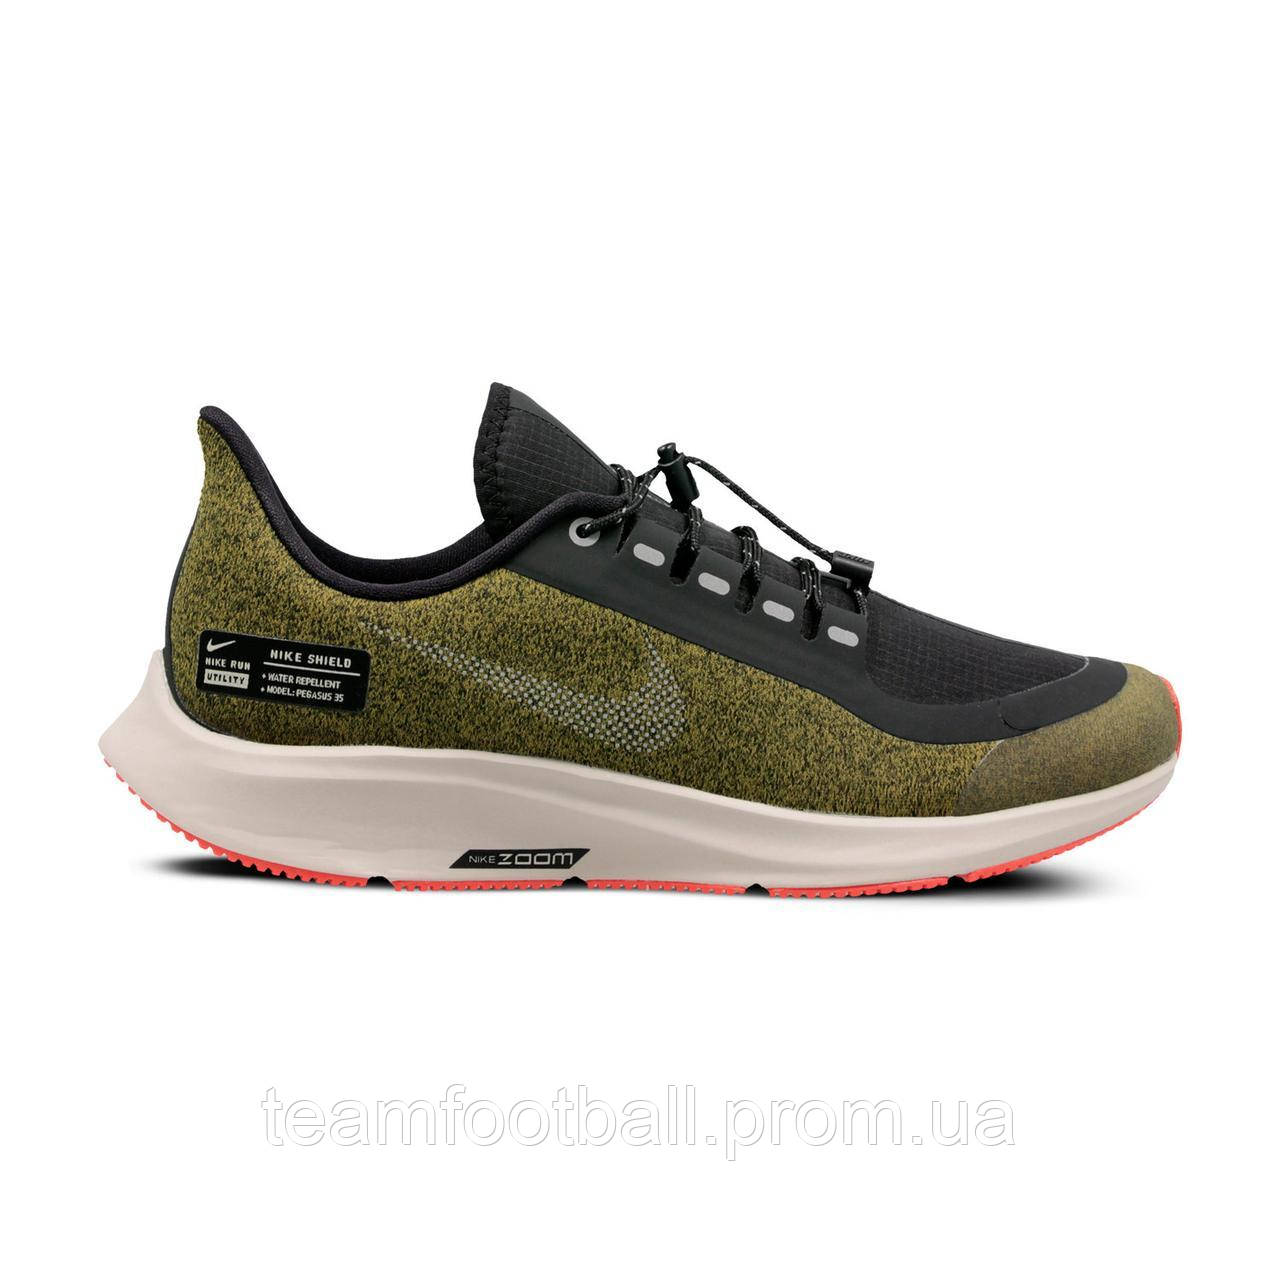 f24df641 Кроссовки Nike Детские AIR ZOOM PEGASUS 35 SHIELD GS(03-01-16) 40 ...